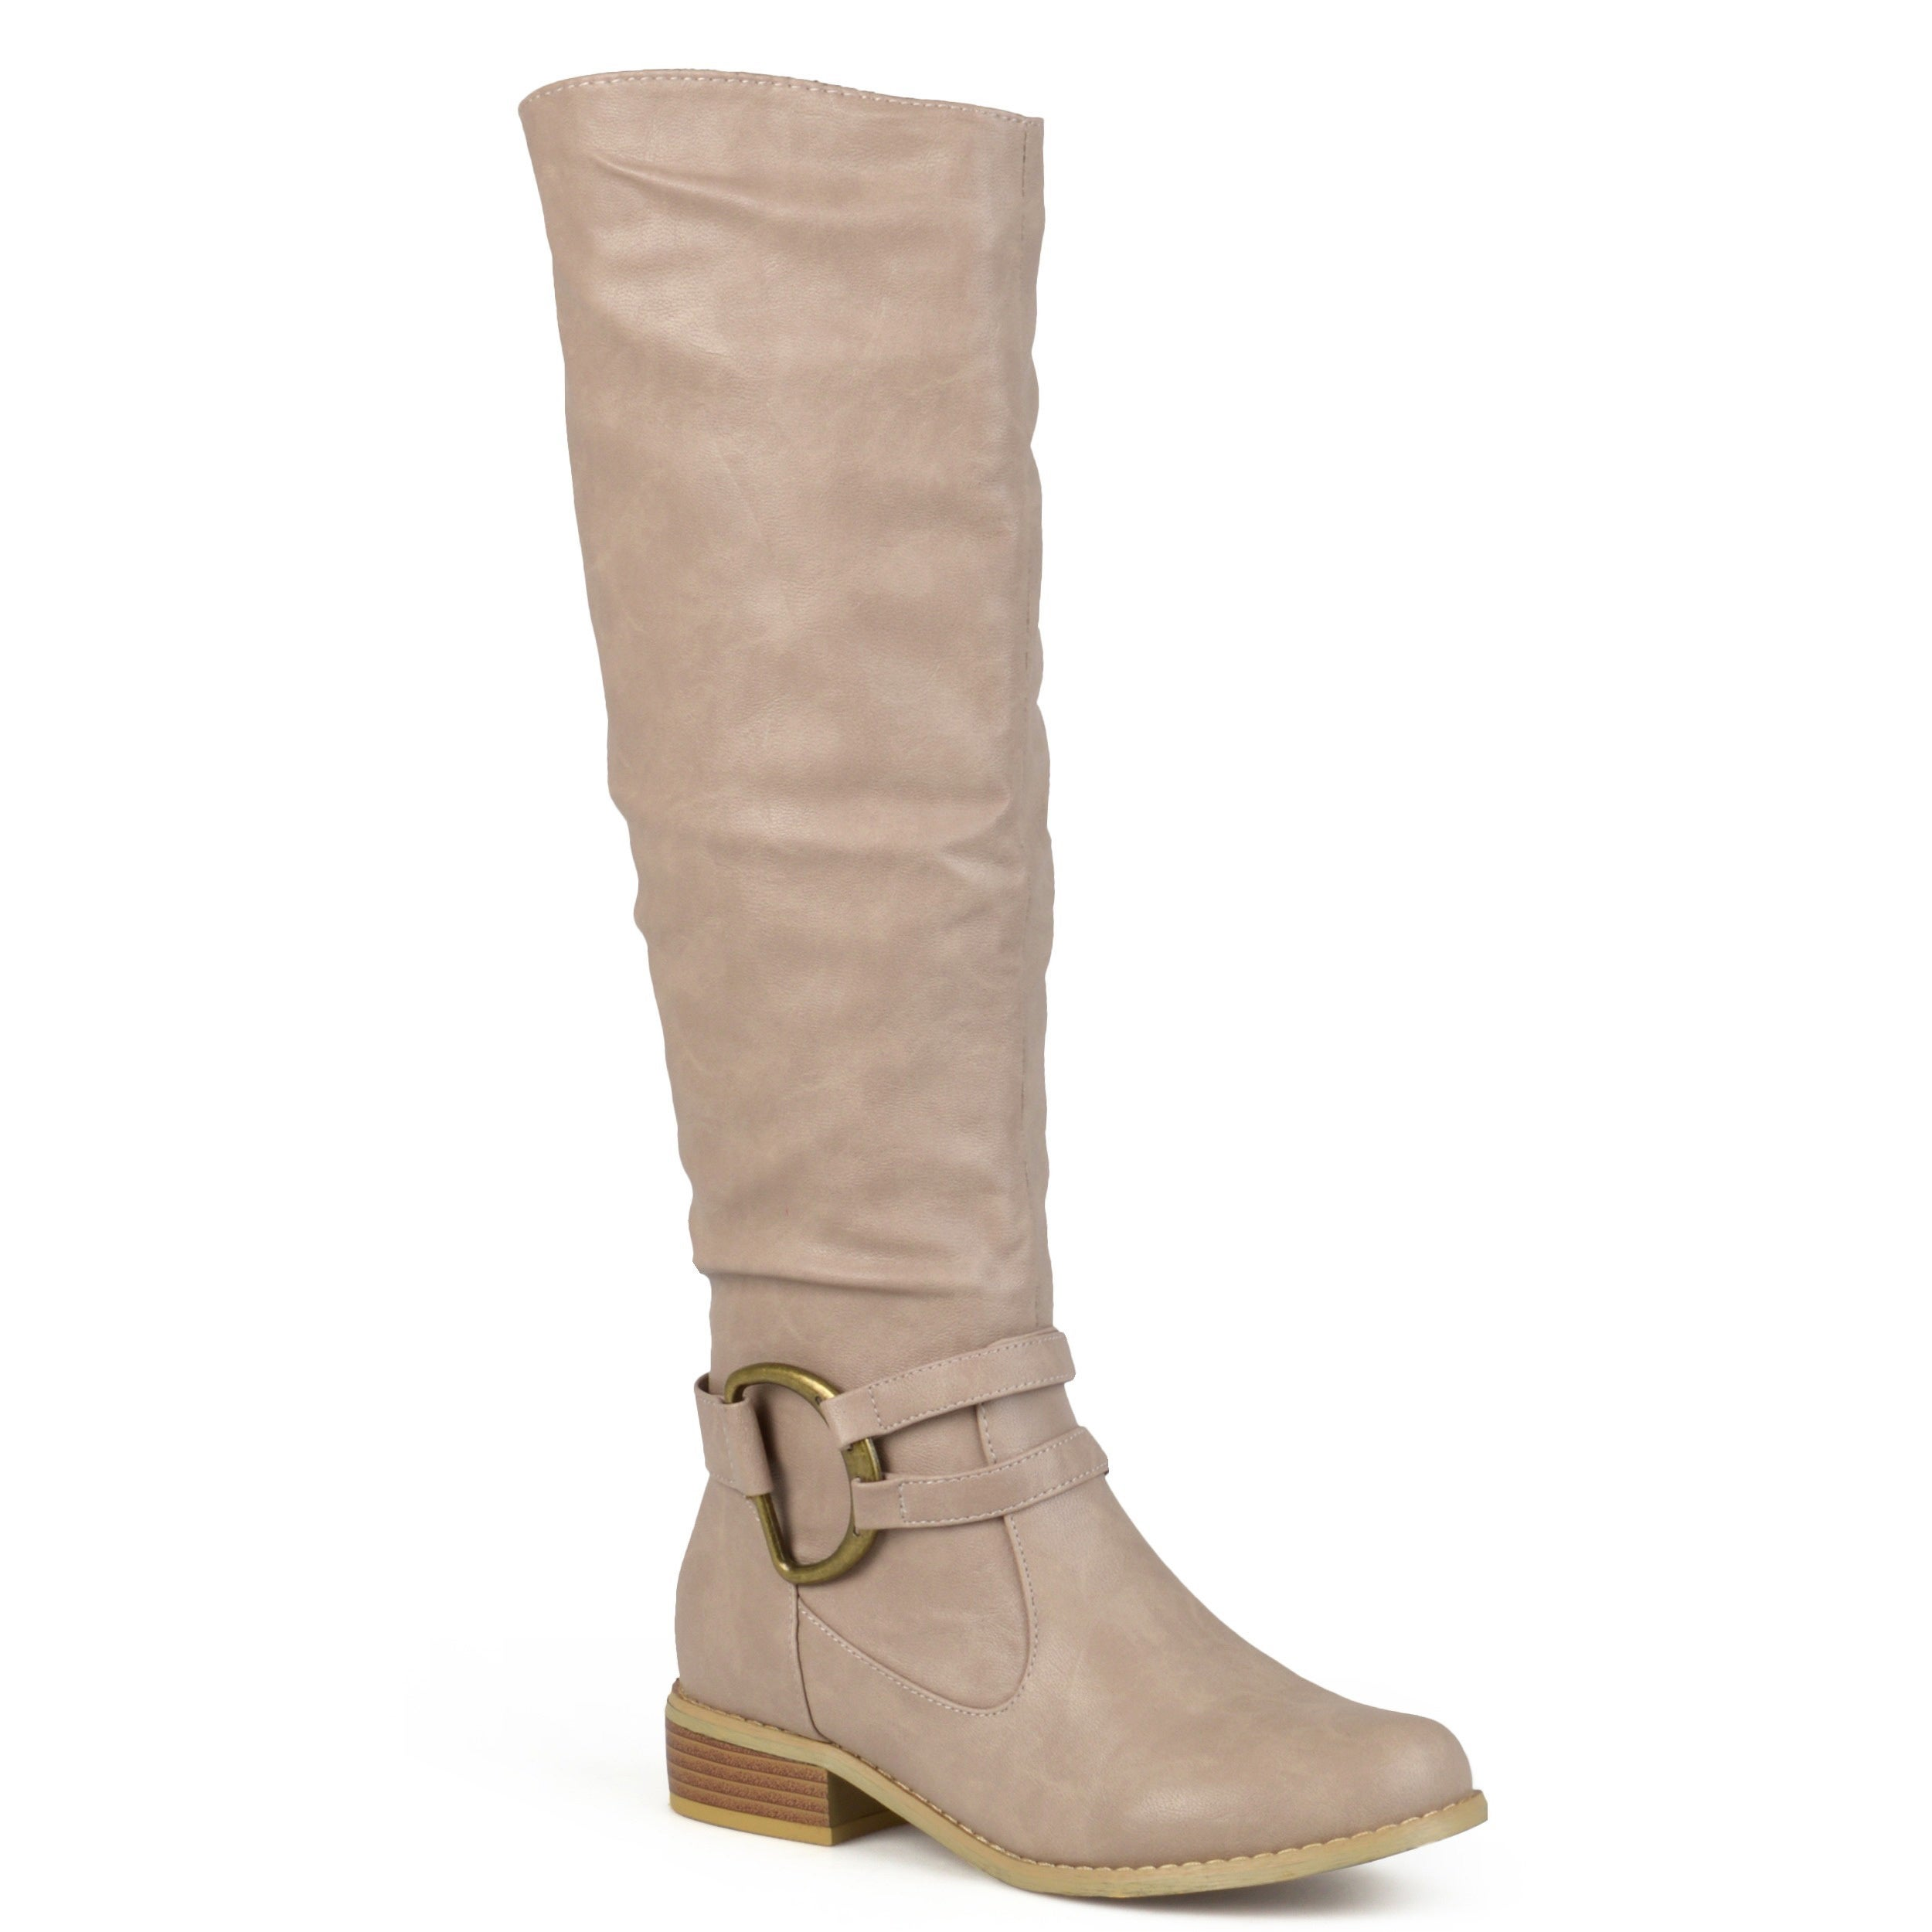 37418873e56 Shop Journee Collection Women s  Charming-01  Regular and Wide-calf Knee- high Riding Boot - On Sale - Free Shipping Today - Overstock - 6187685